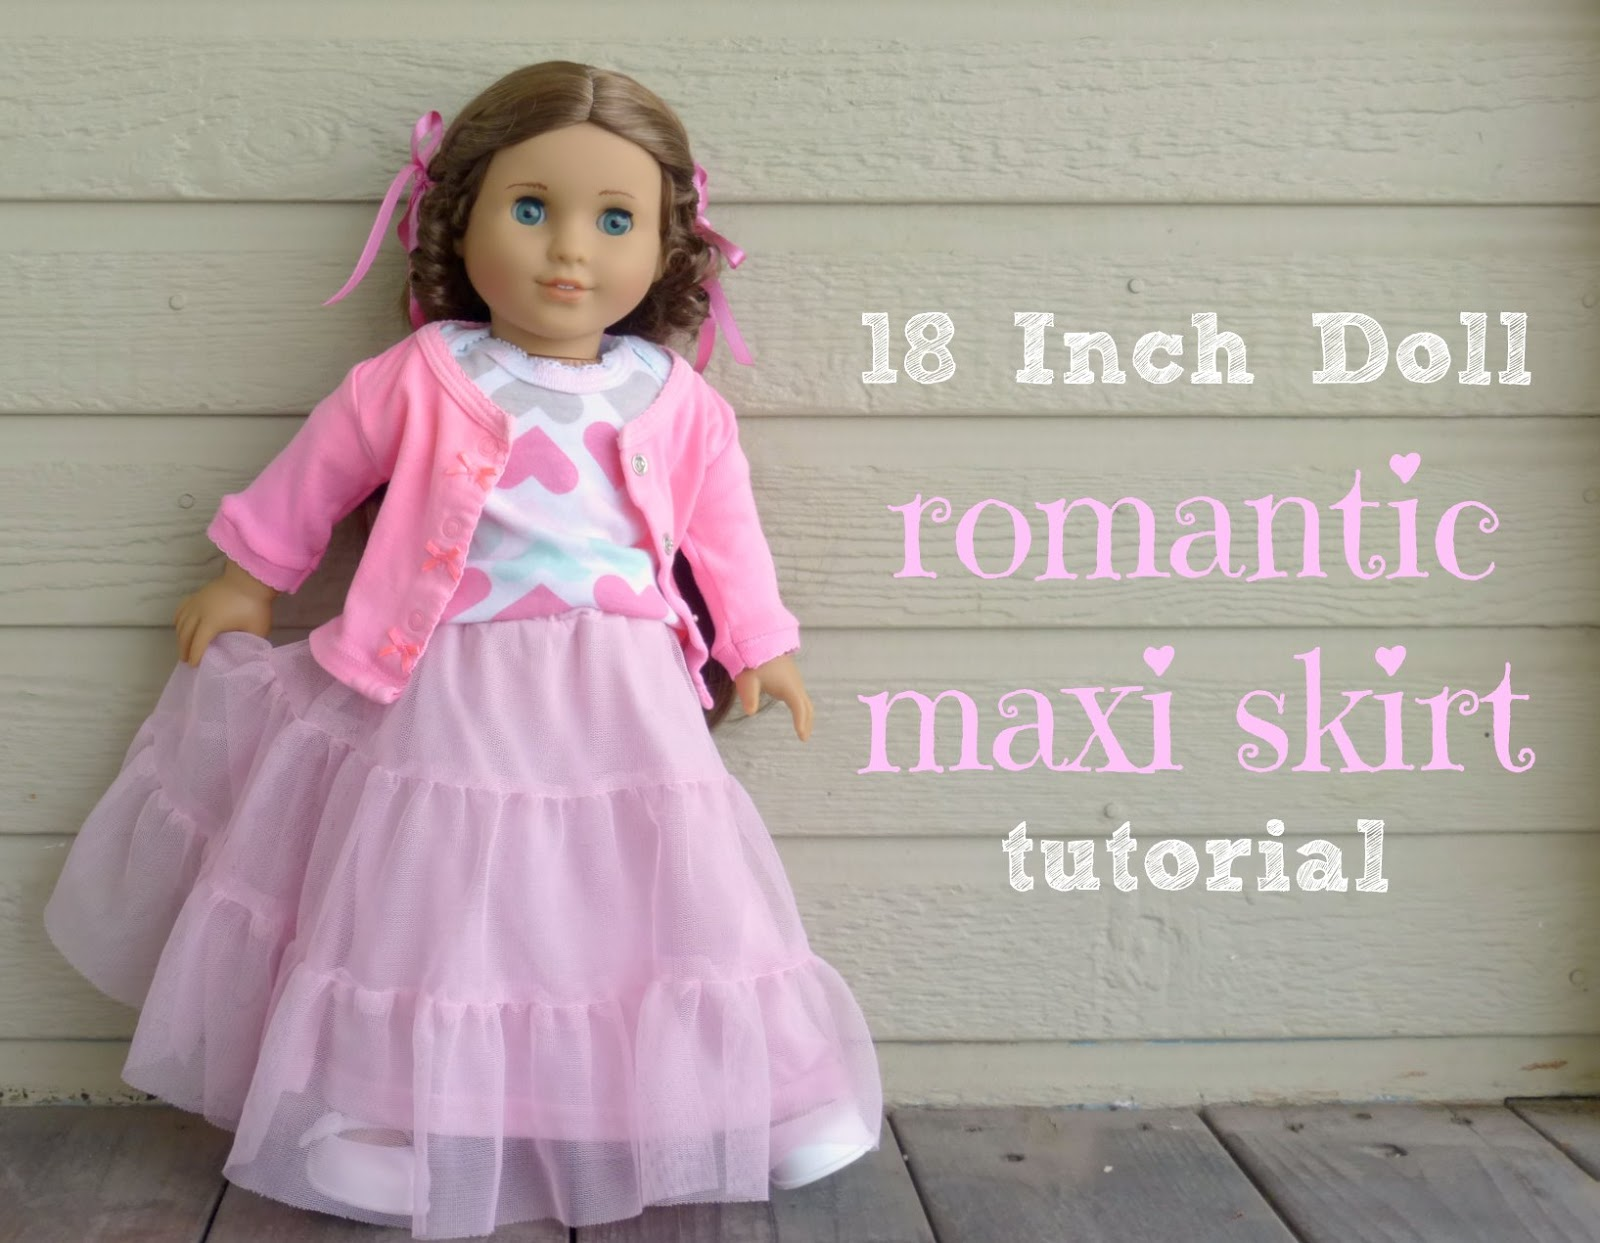 http://www.sewsnbows.com/18-doll-romantic-maxi-skirt-tutorial-from-domestic-bliss-squared/